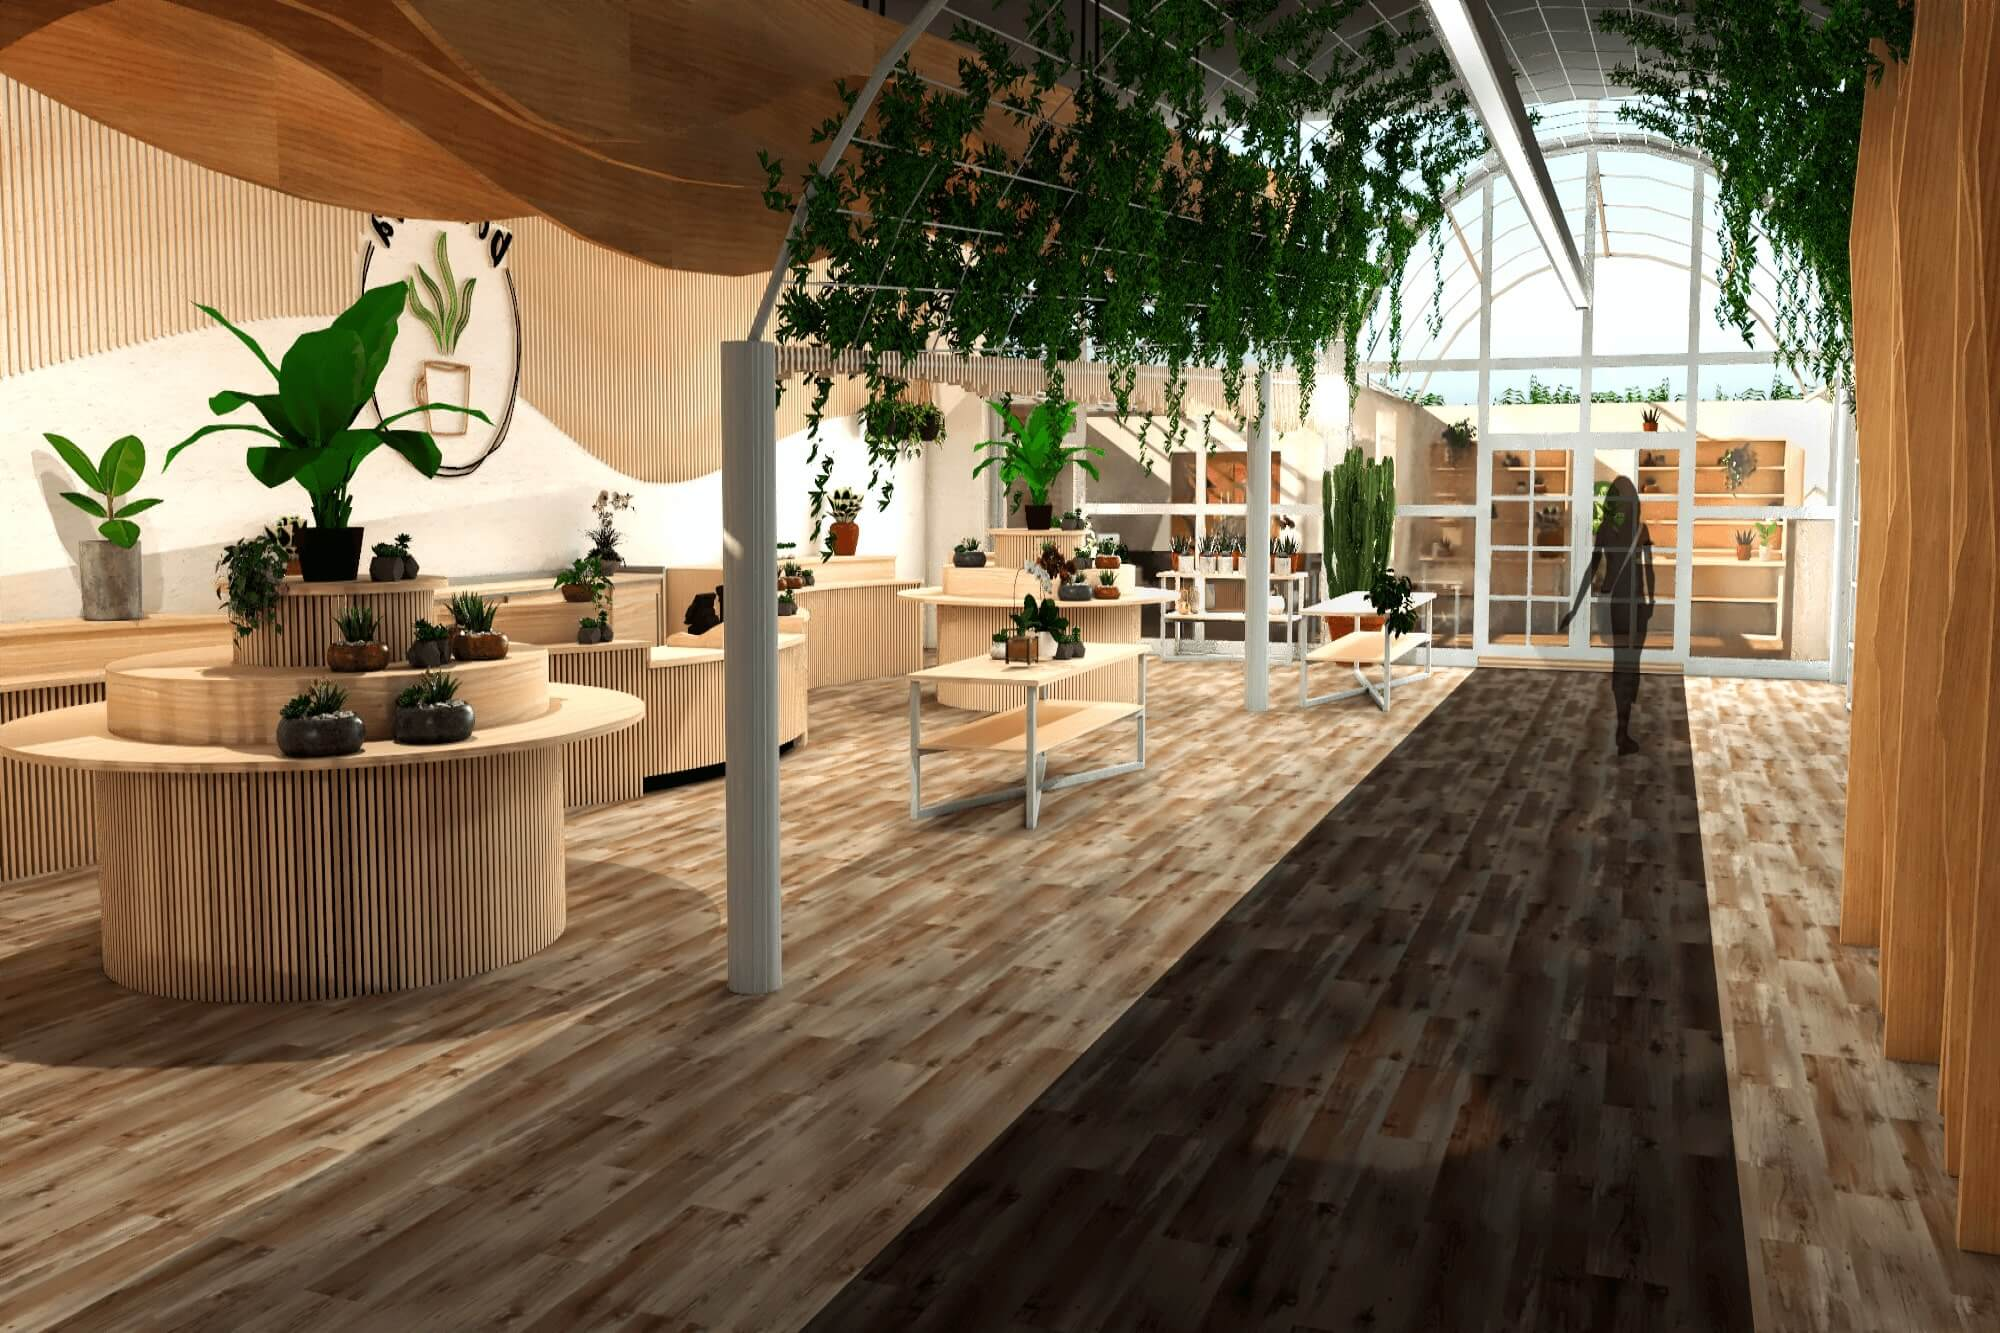 Digital illustration of a light and modern cafe with a wooden floor and lots of plants